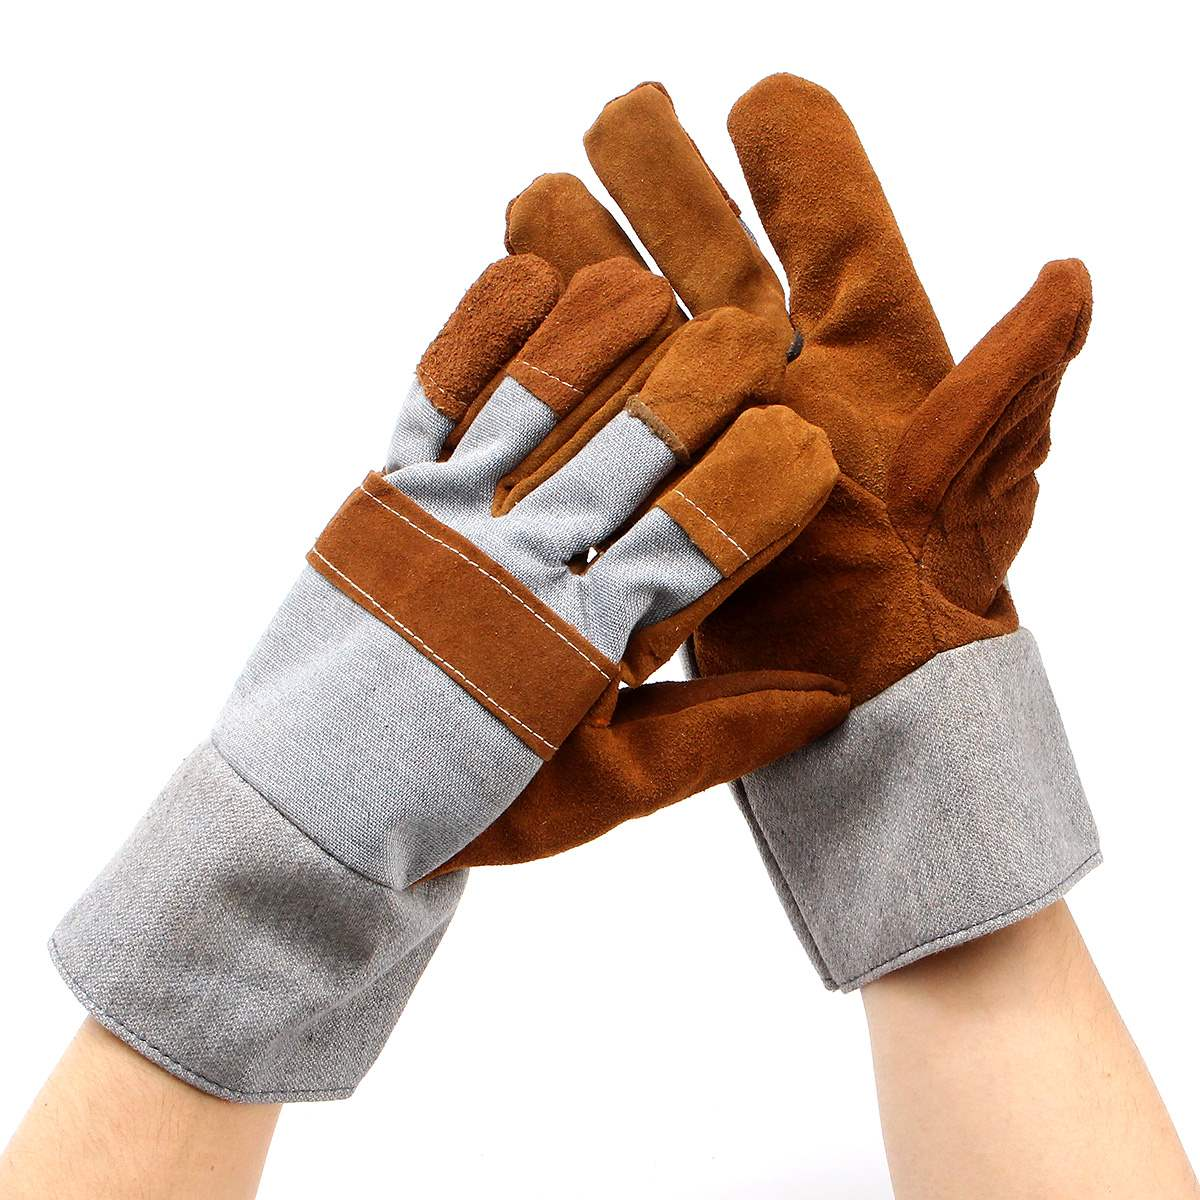 Leather work gloves for welding - Welding Welders Work Soft Cowhide Leather Plus Gloves For Protecting Hand Safety Gloves China